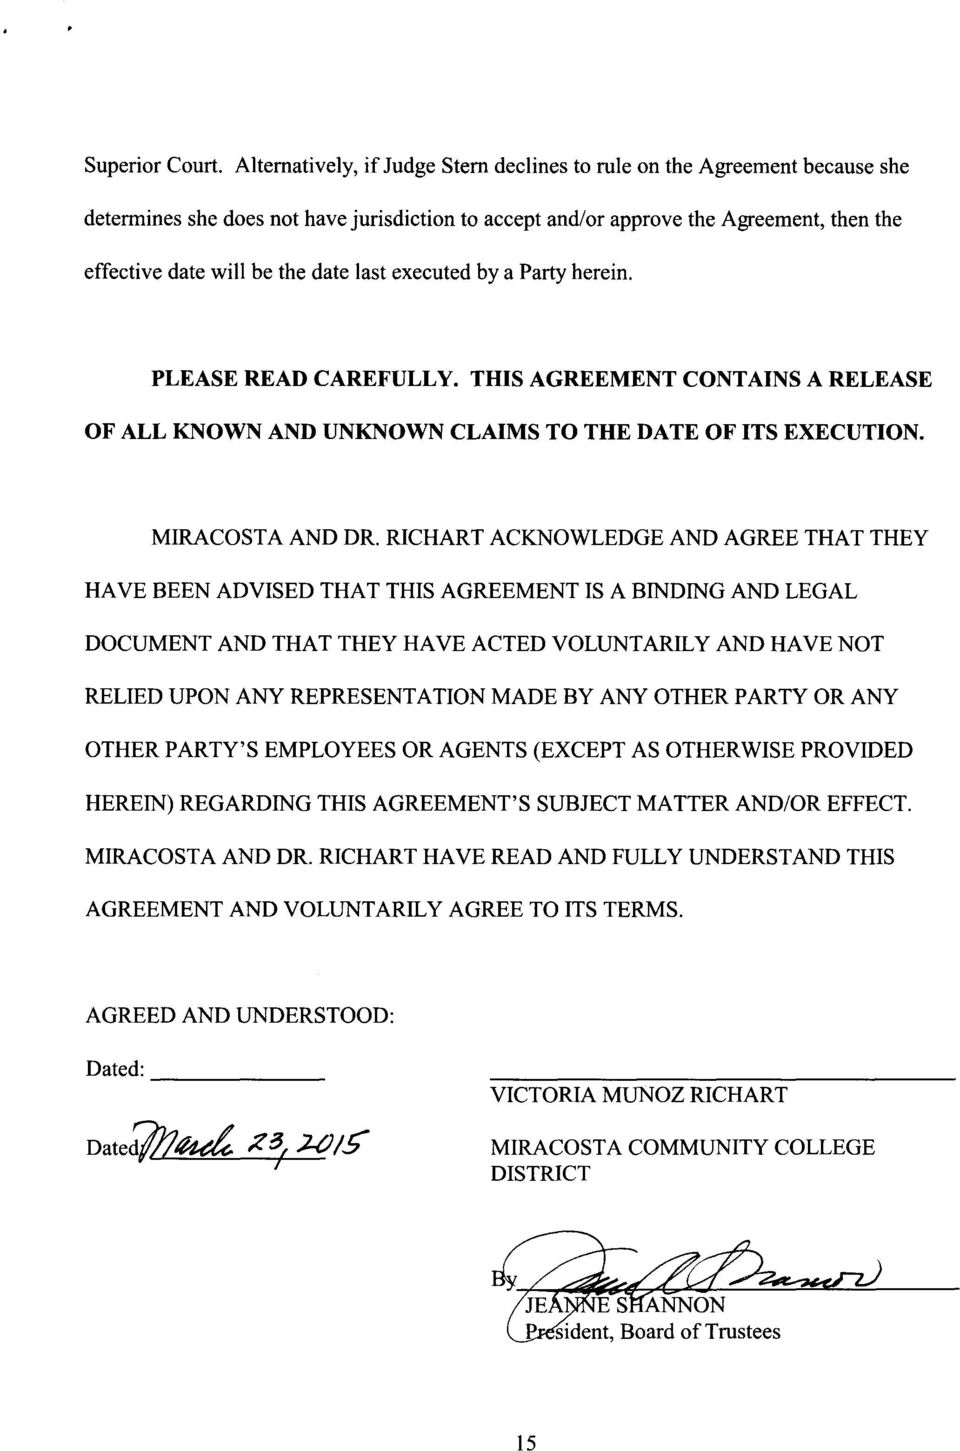 last executed by a Party herein. PLEASE READ CAREFULLY. THIS AGREEMENT CONTAINS A RELEASE OF ALL KNOWN AND UNKNOWN CLAIMS TO THE DATE OF ITS EXECUTION. MIRACOSTA AND DR.